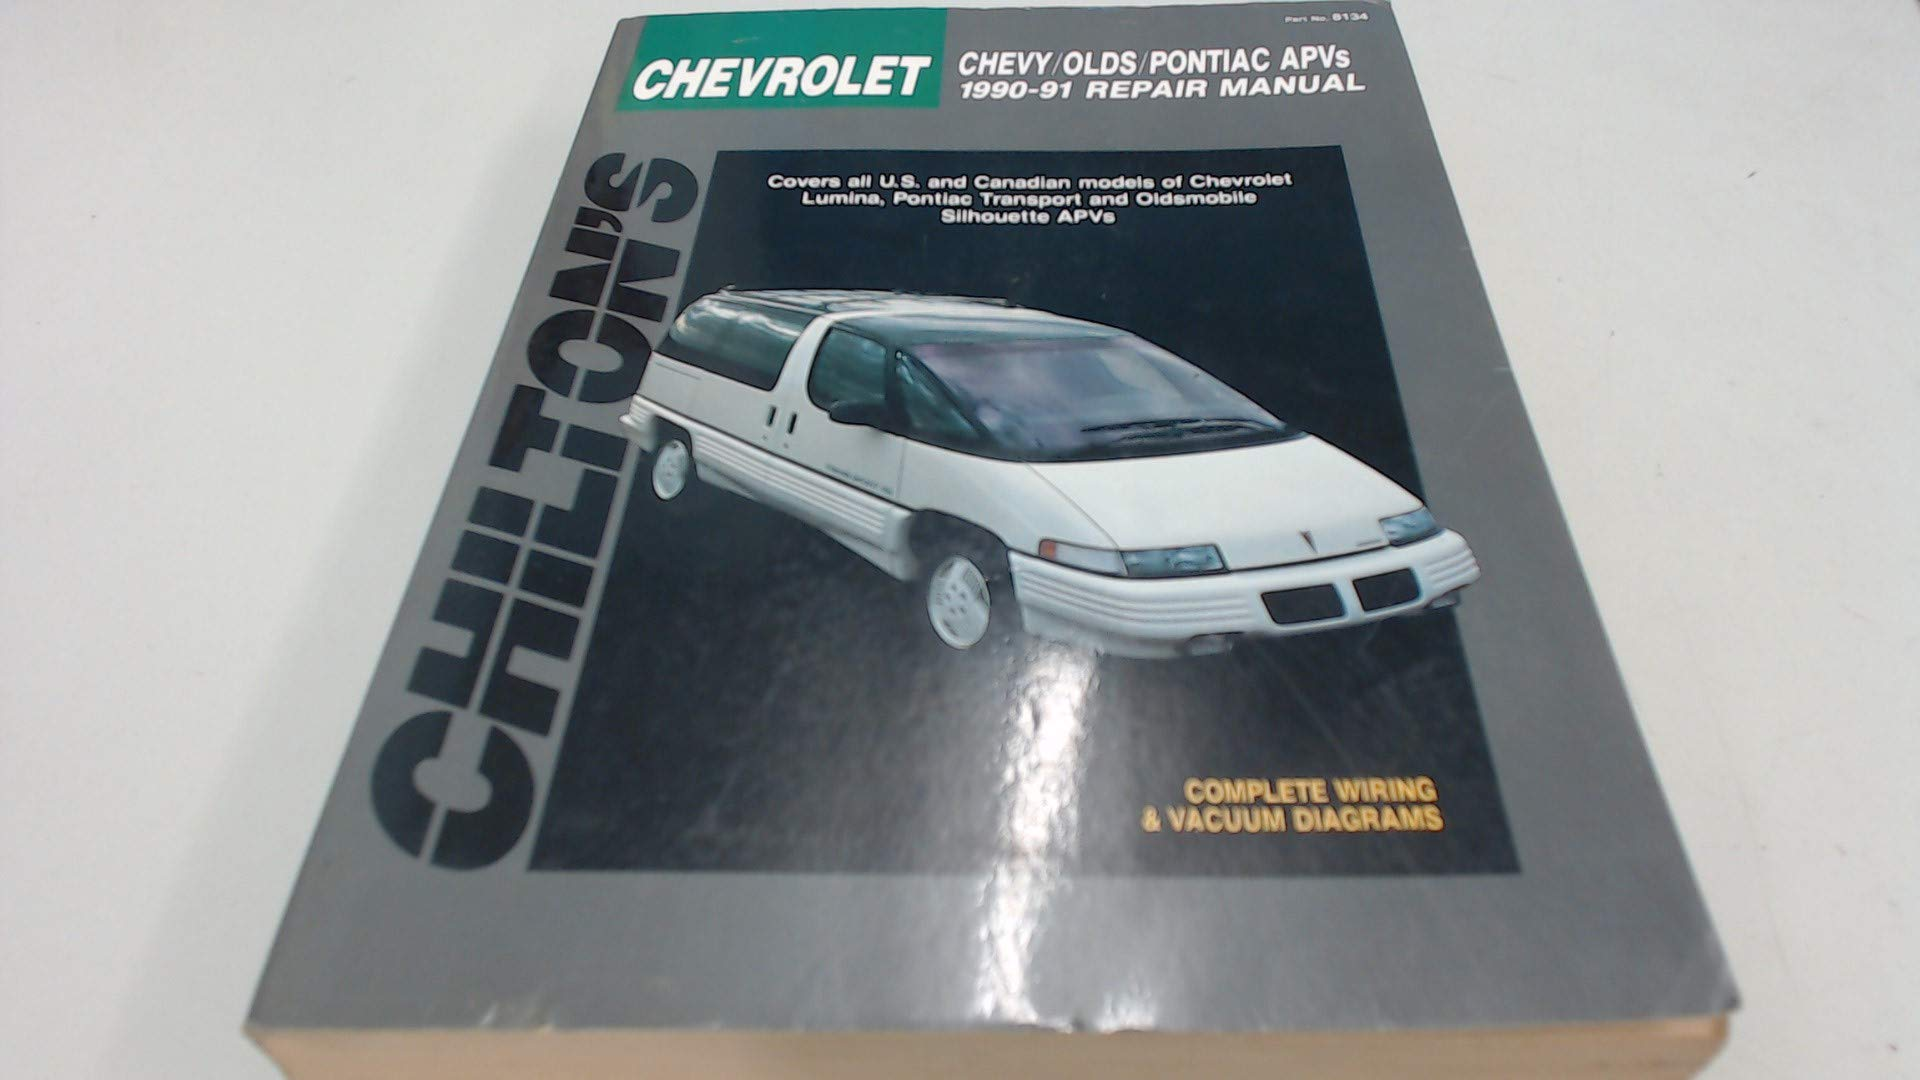 Renault Vacuum Diagram Wiring Library Oldsmobile Chevrolet Lumina Pontiac Transport Olds Silhouette 1990 91 Repair Manual Total Car